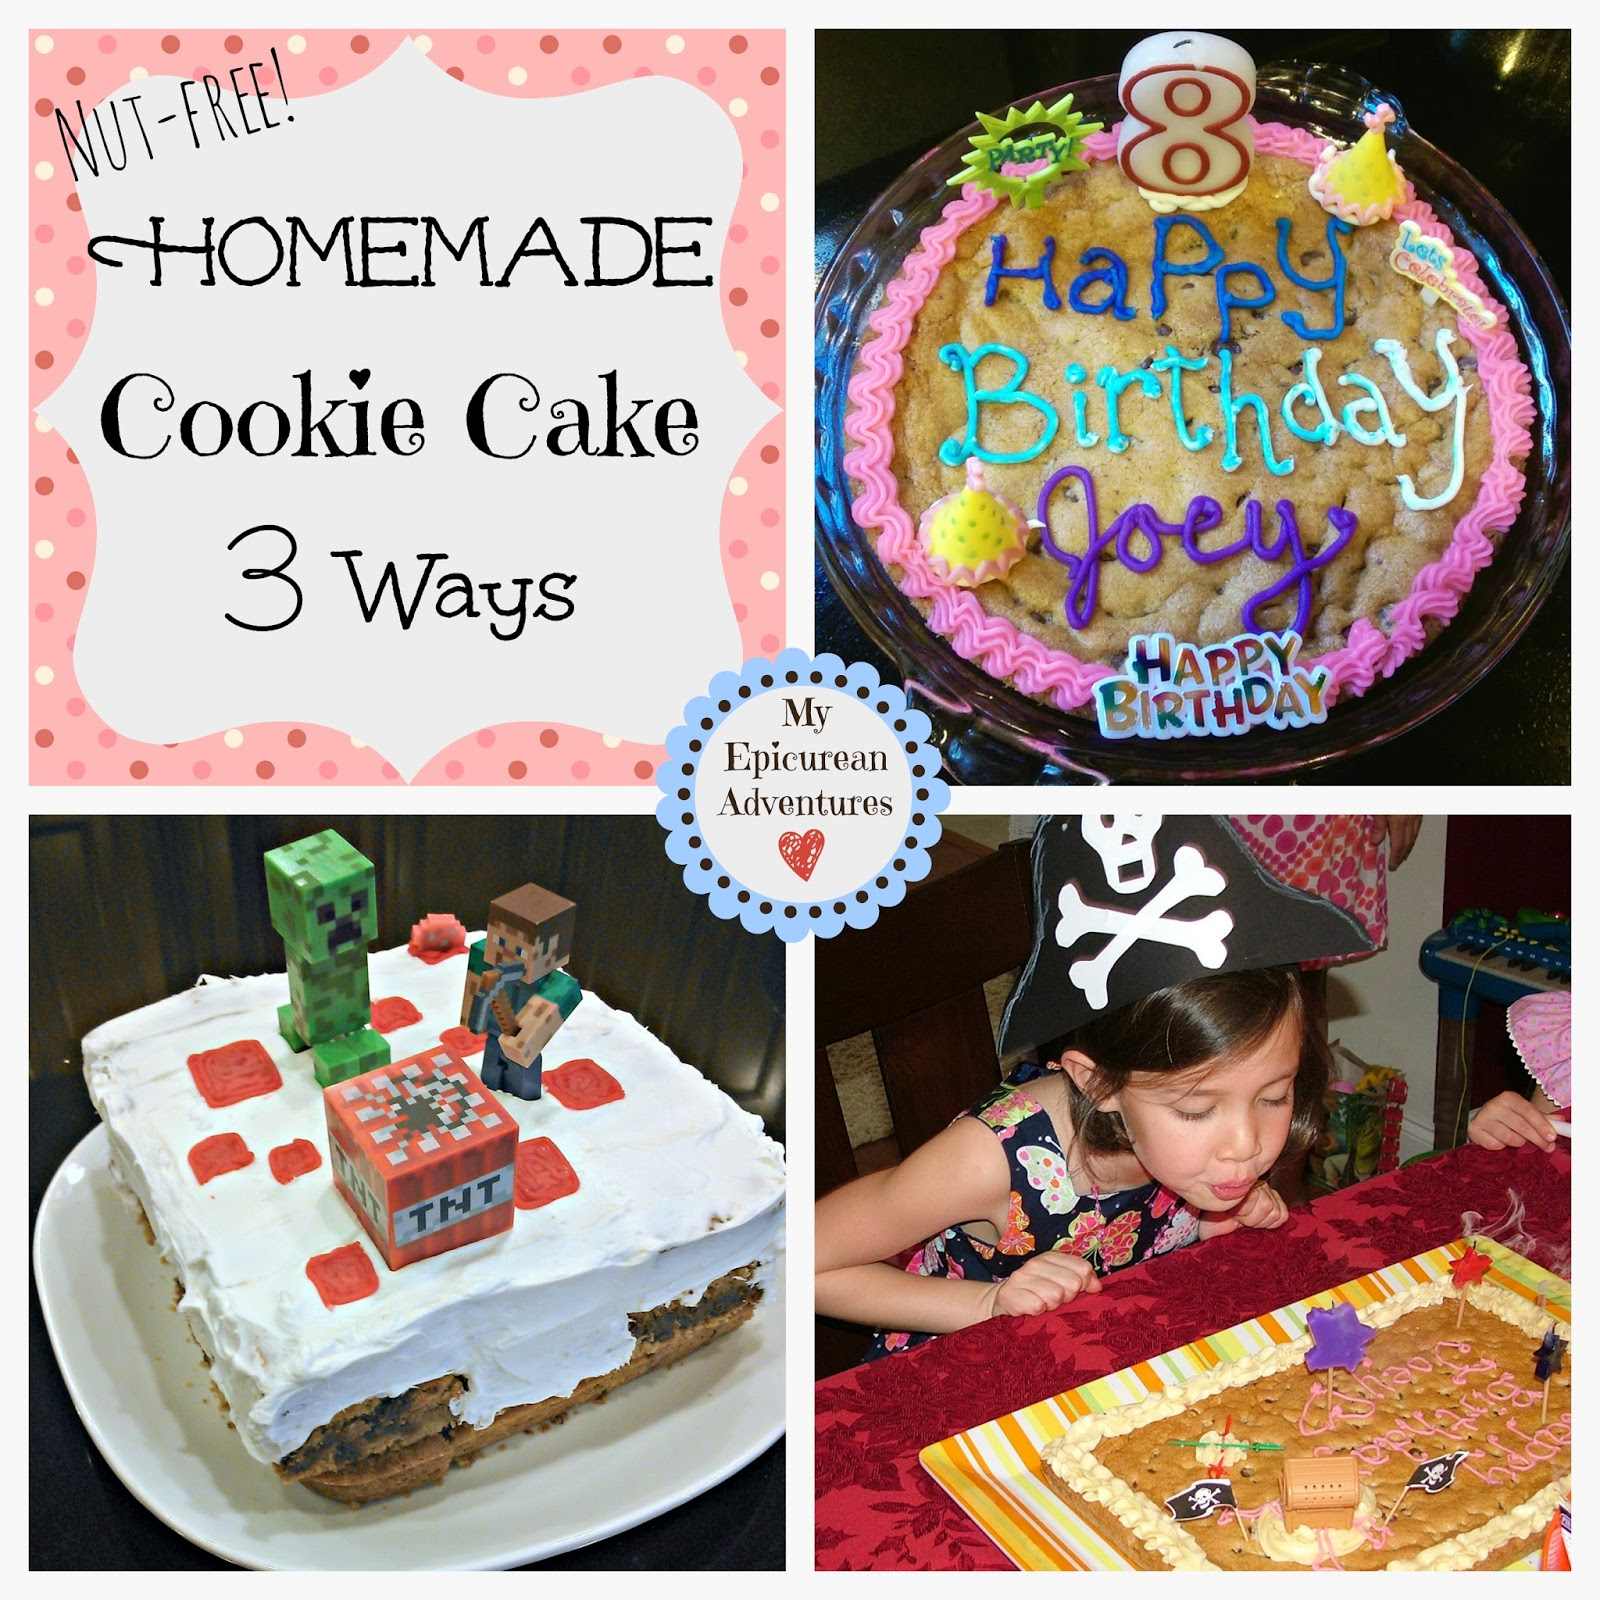 Homemade Cookie Cake - made 3 ways. So easy, cheap AND better for you!